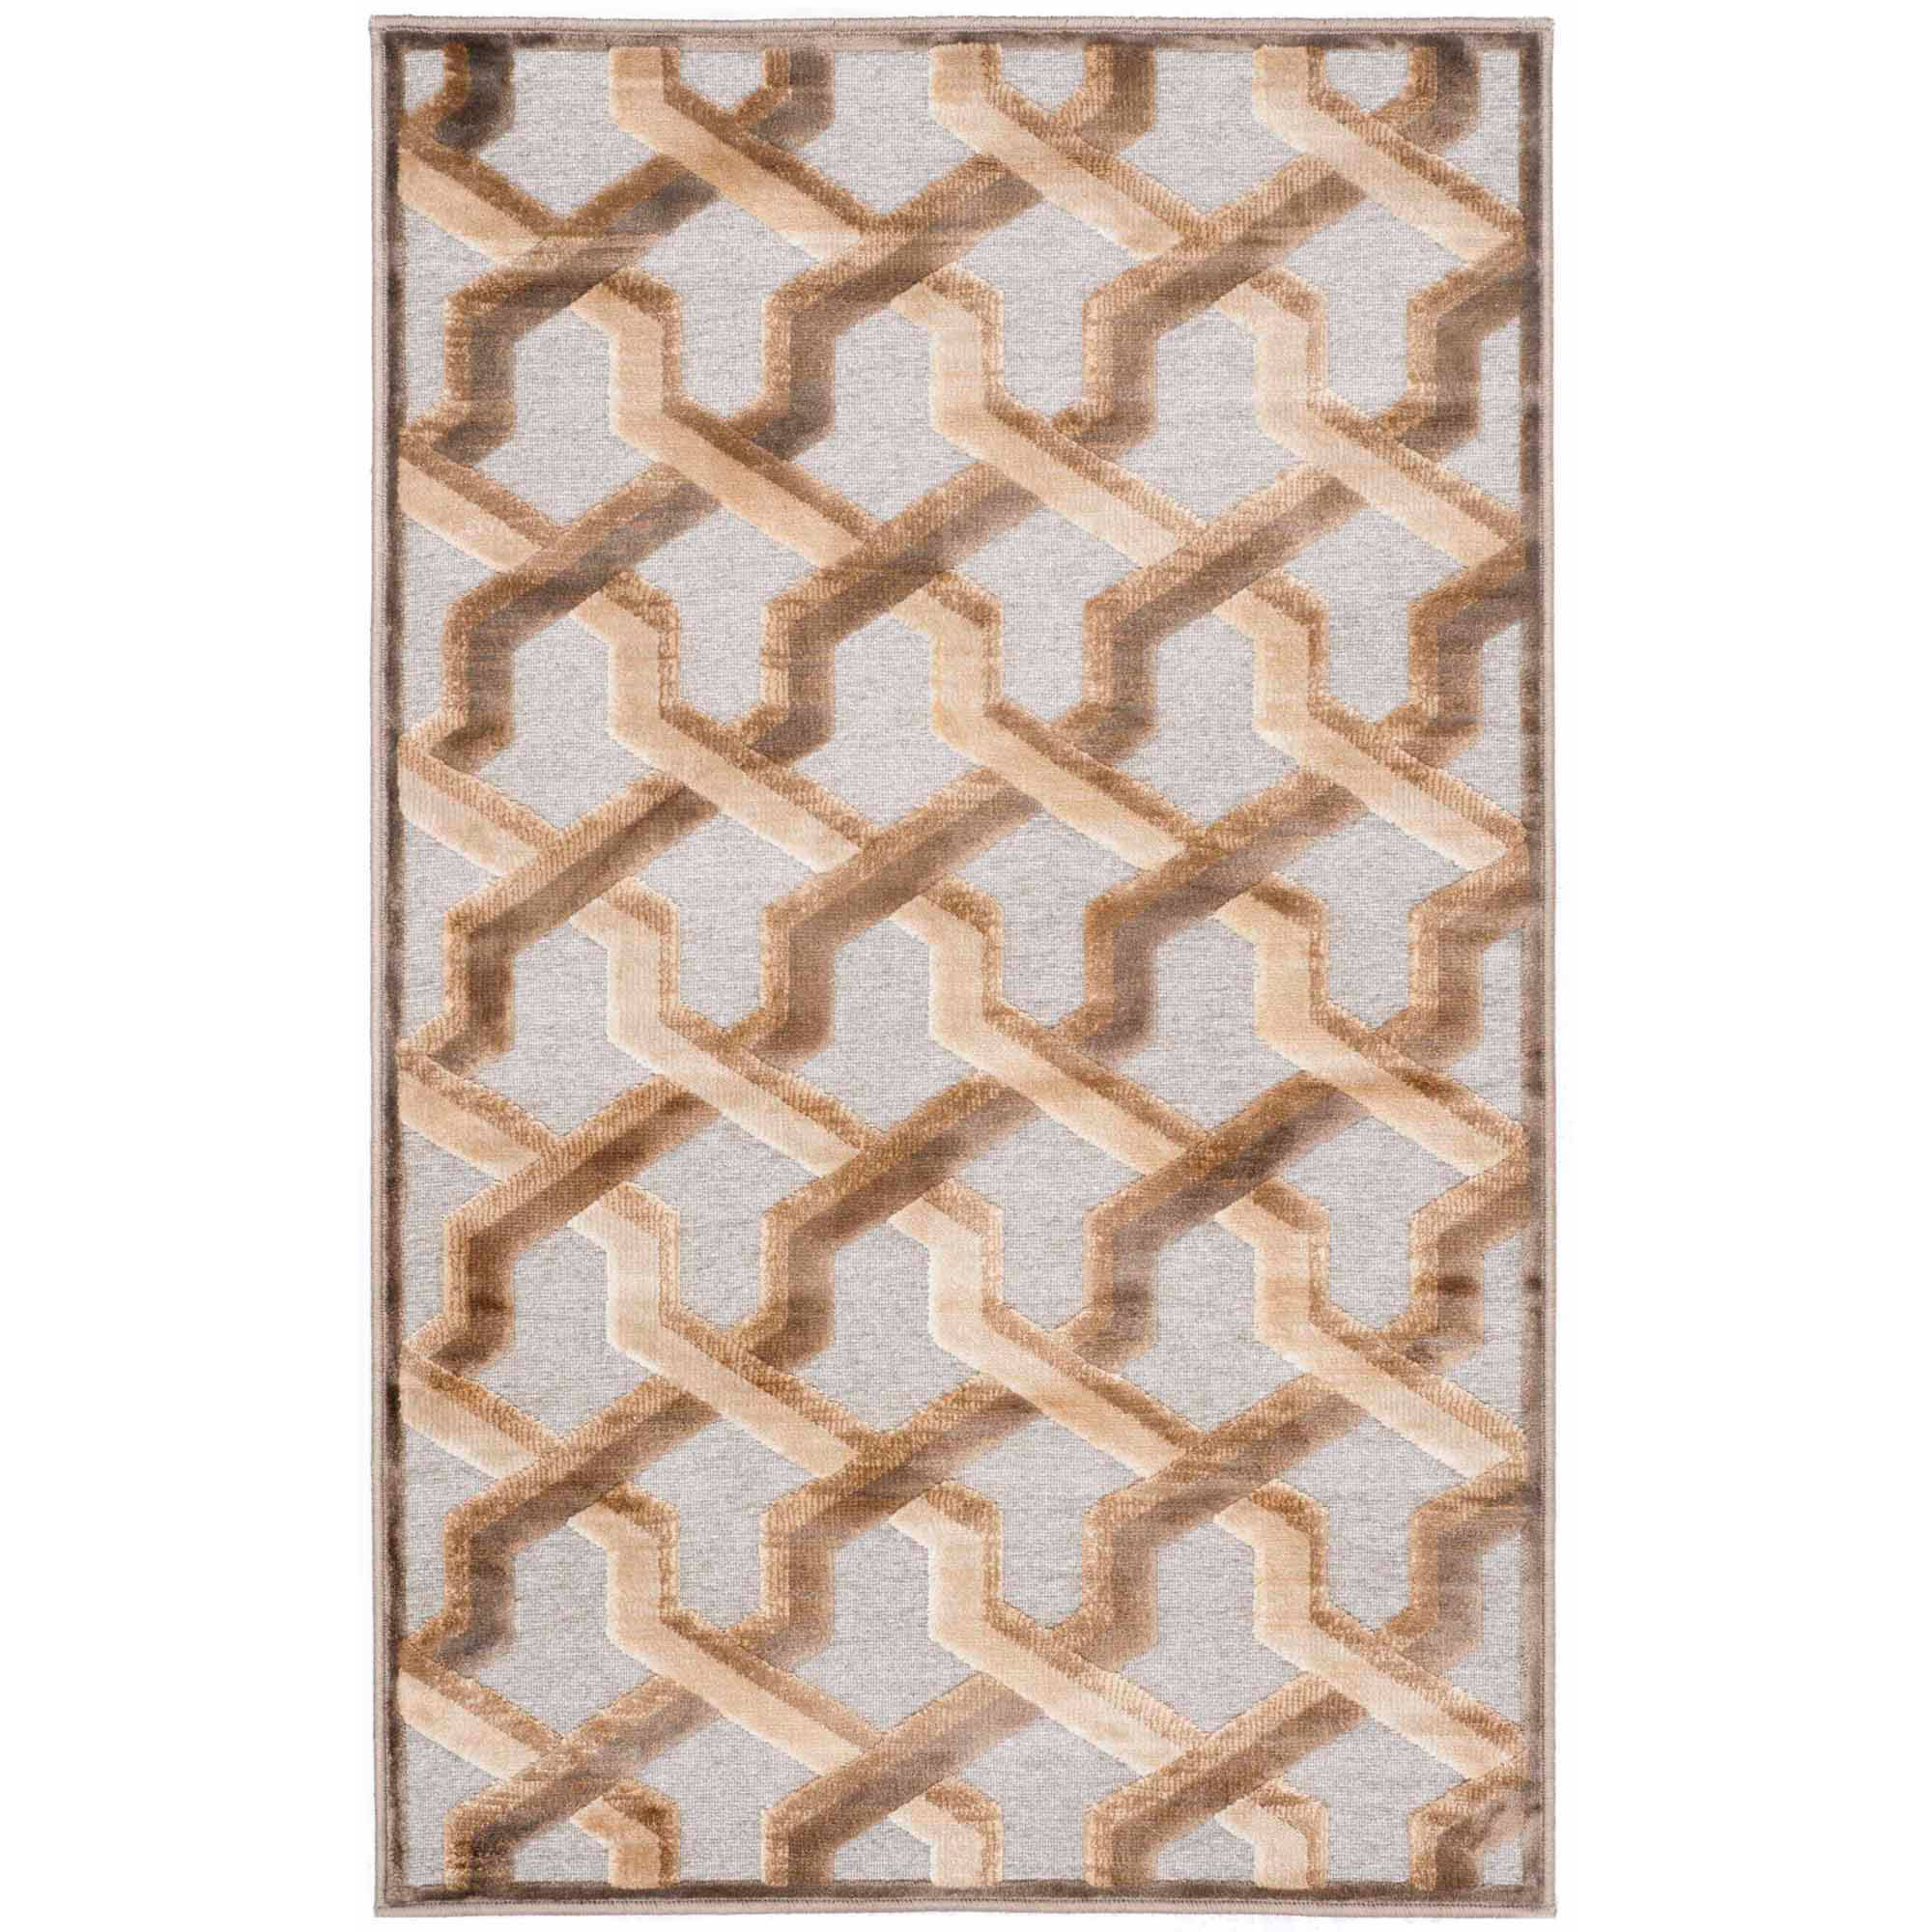 Safavieh Paradise Gayle Geometric Tessellation Area Rug or Runner